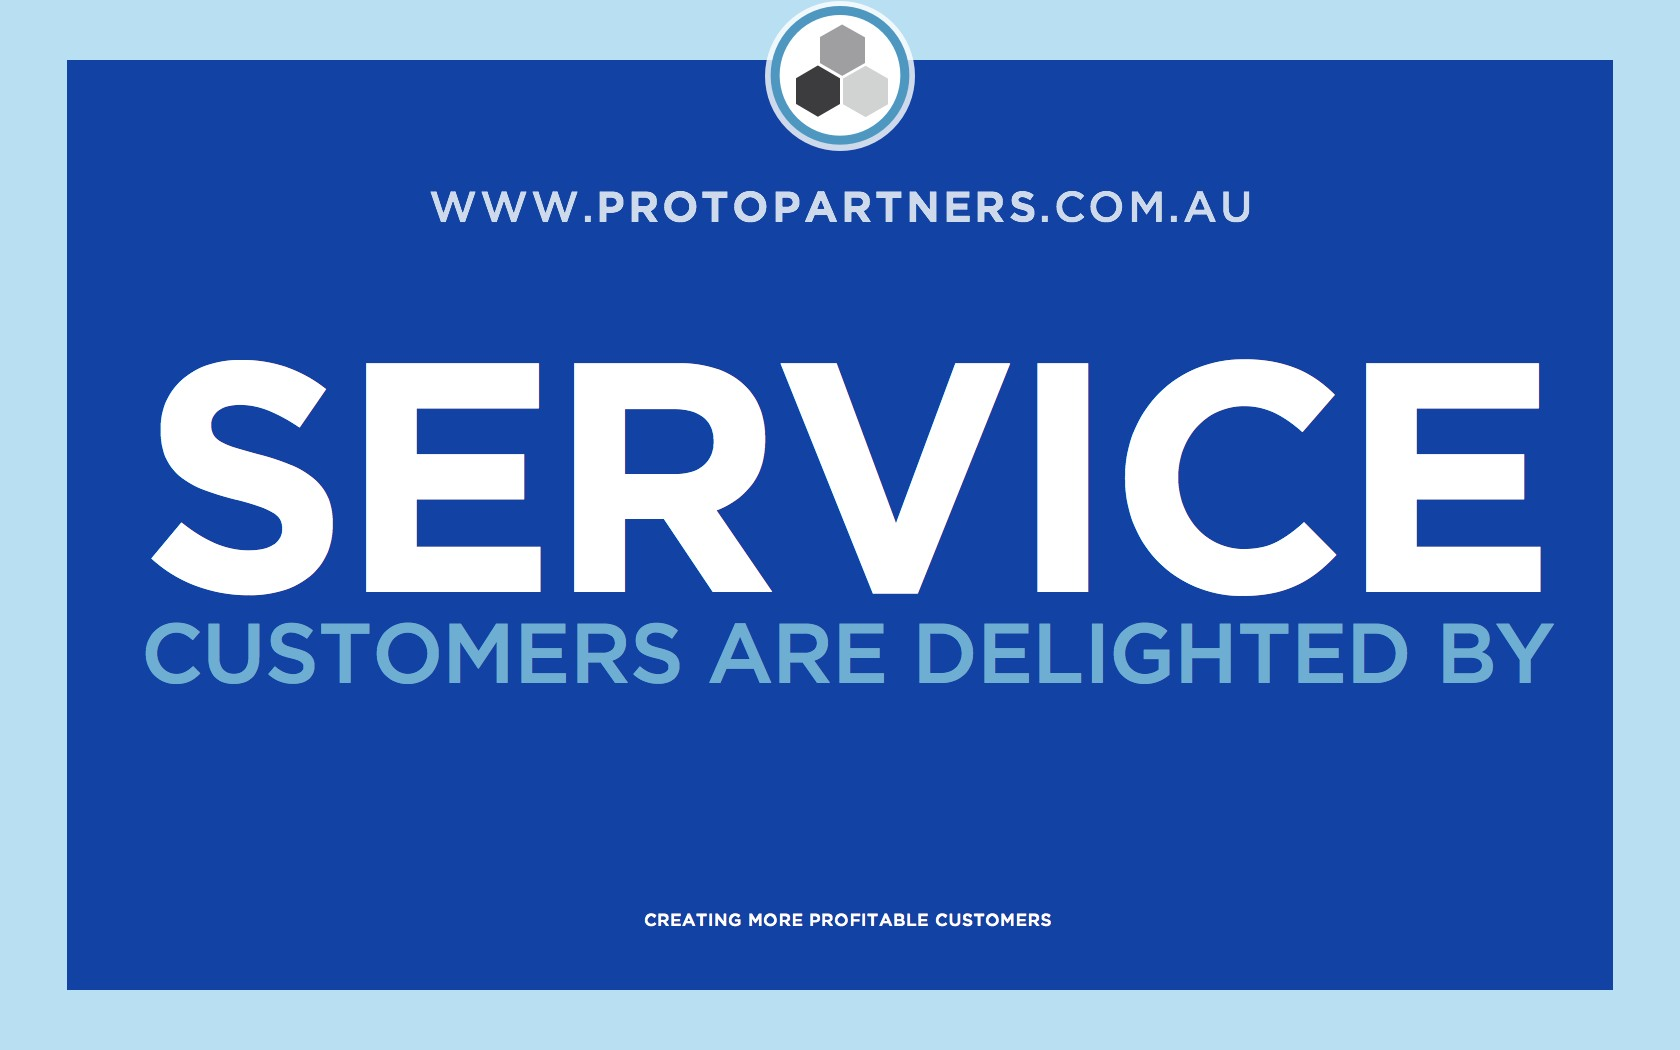 Sign saying service customers are delighted by